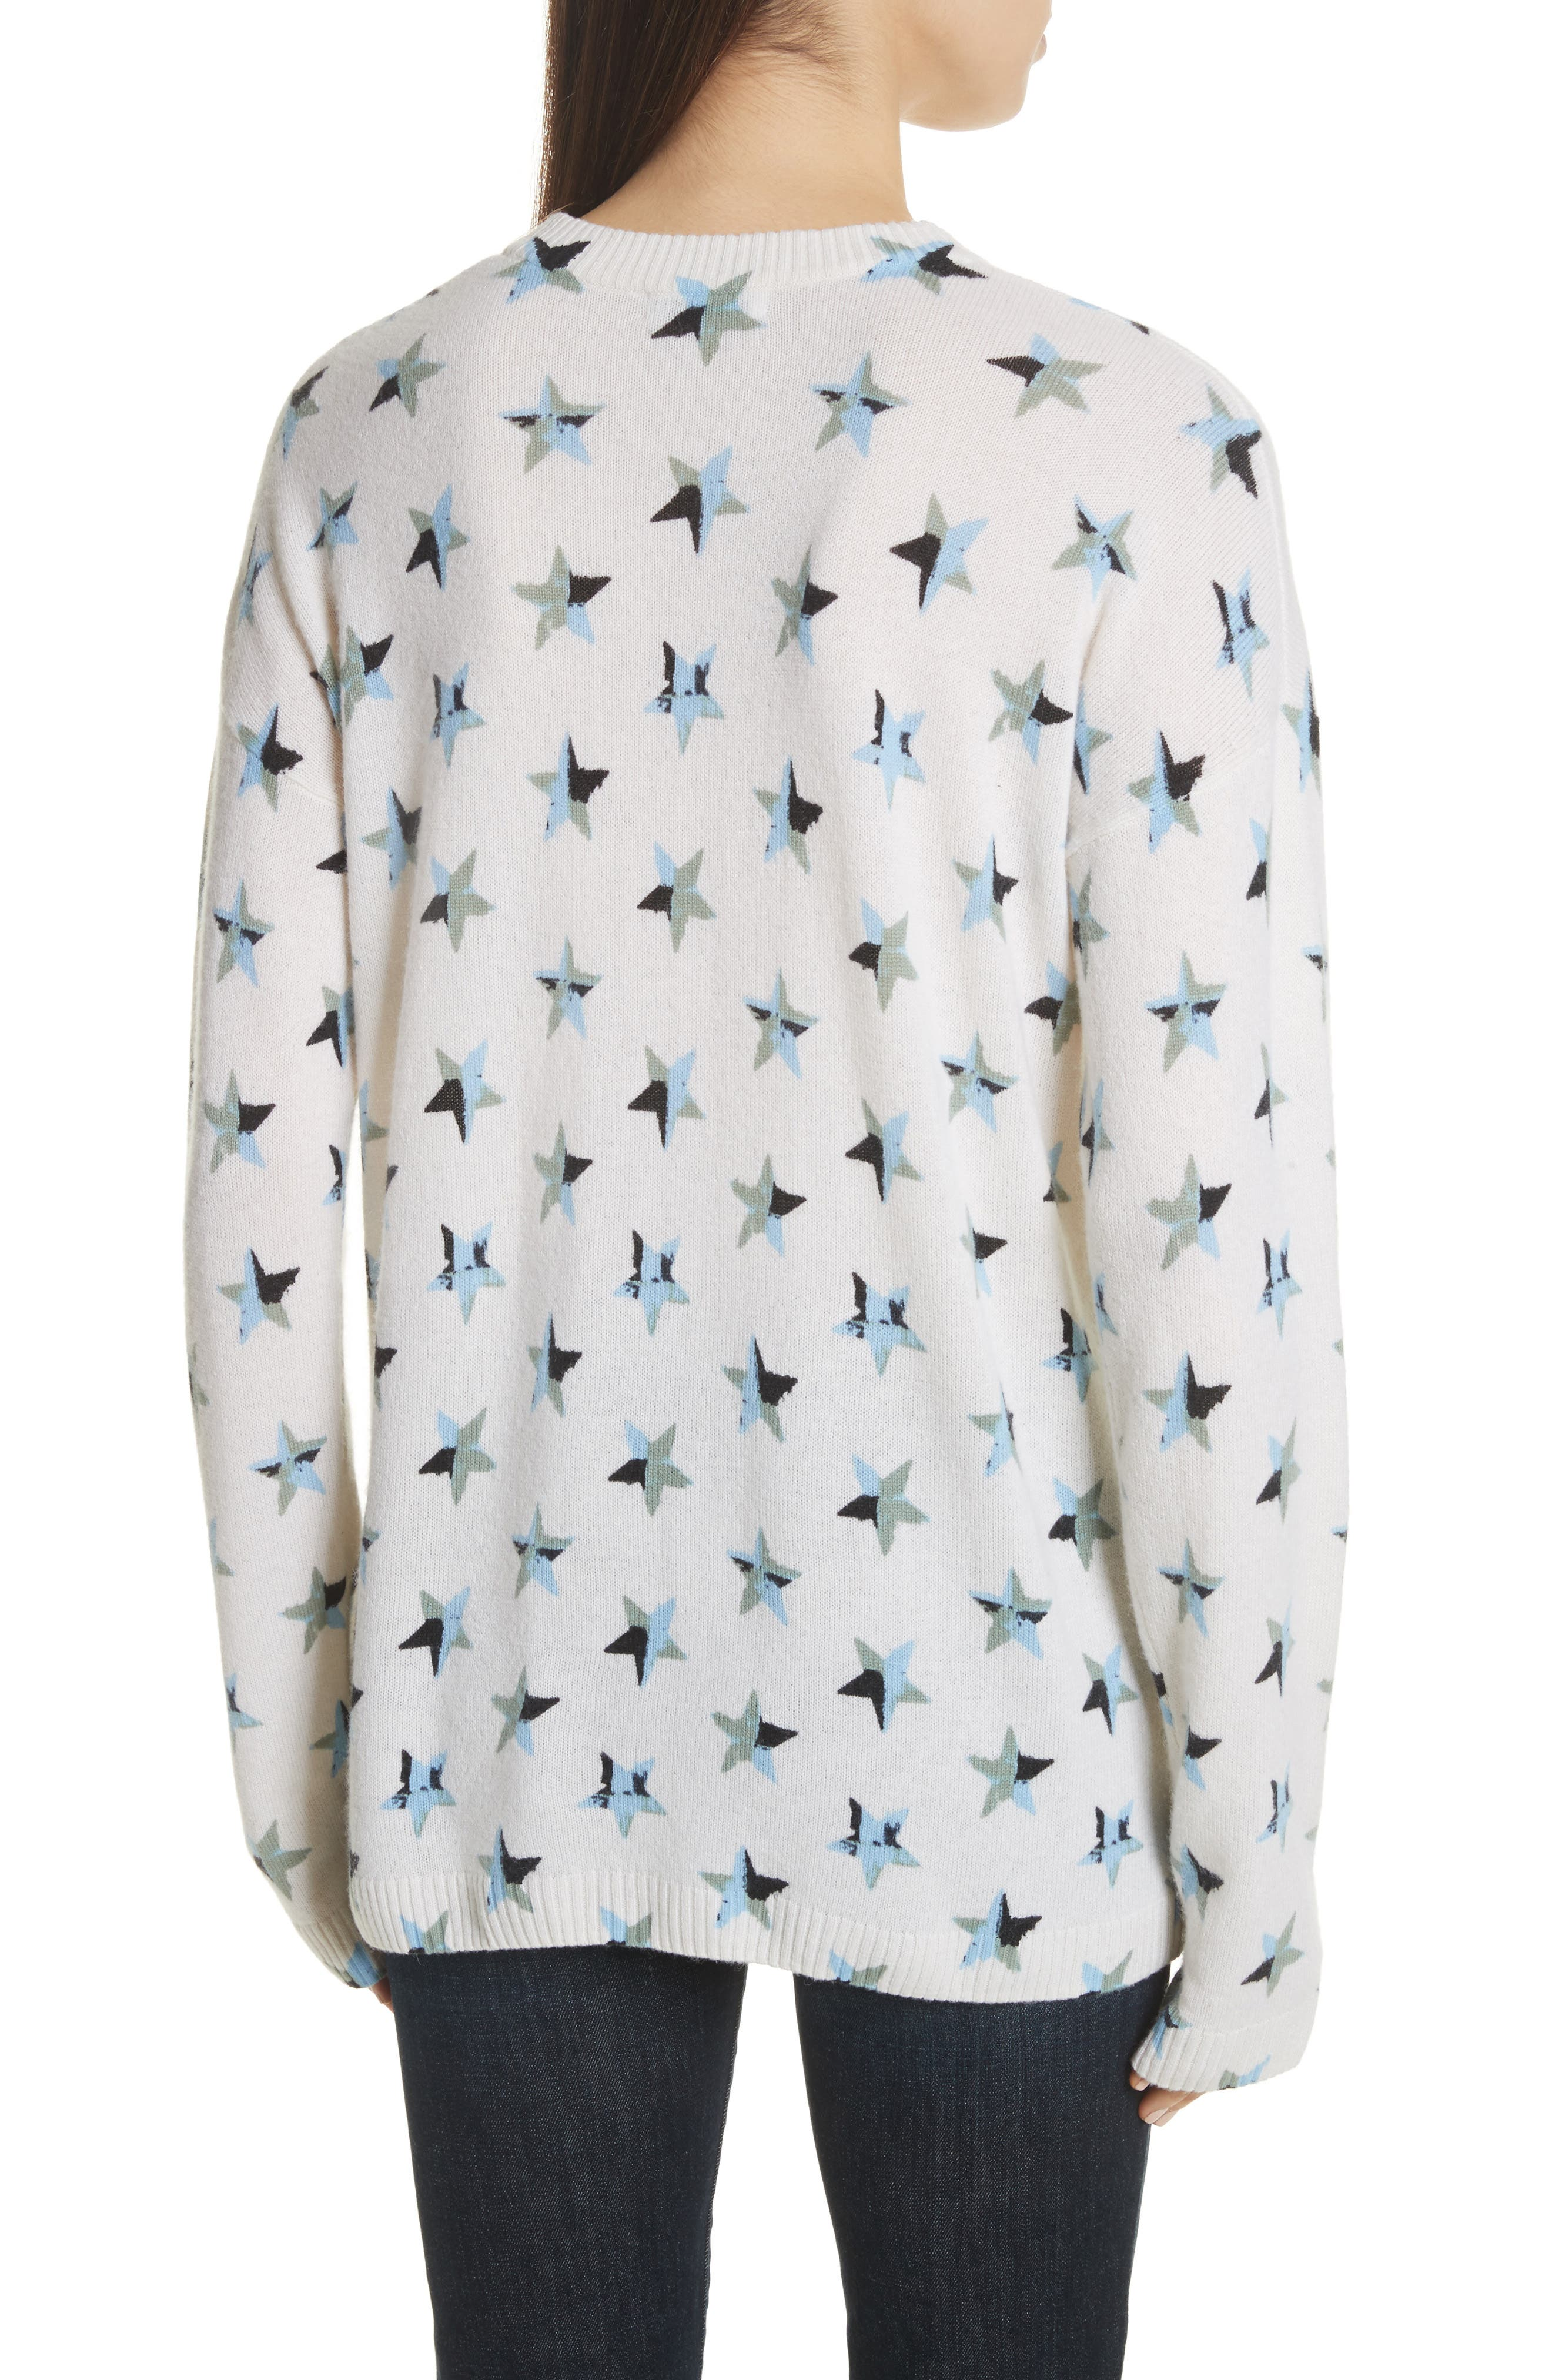 Bryce Star Print Cashmere Sweater,                             Alternate thumbnail 2, color,                             188